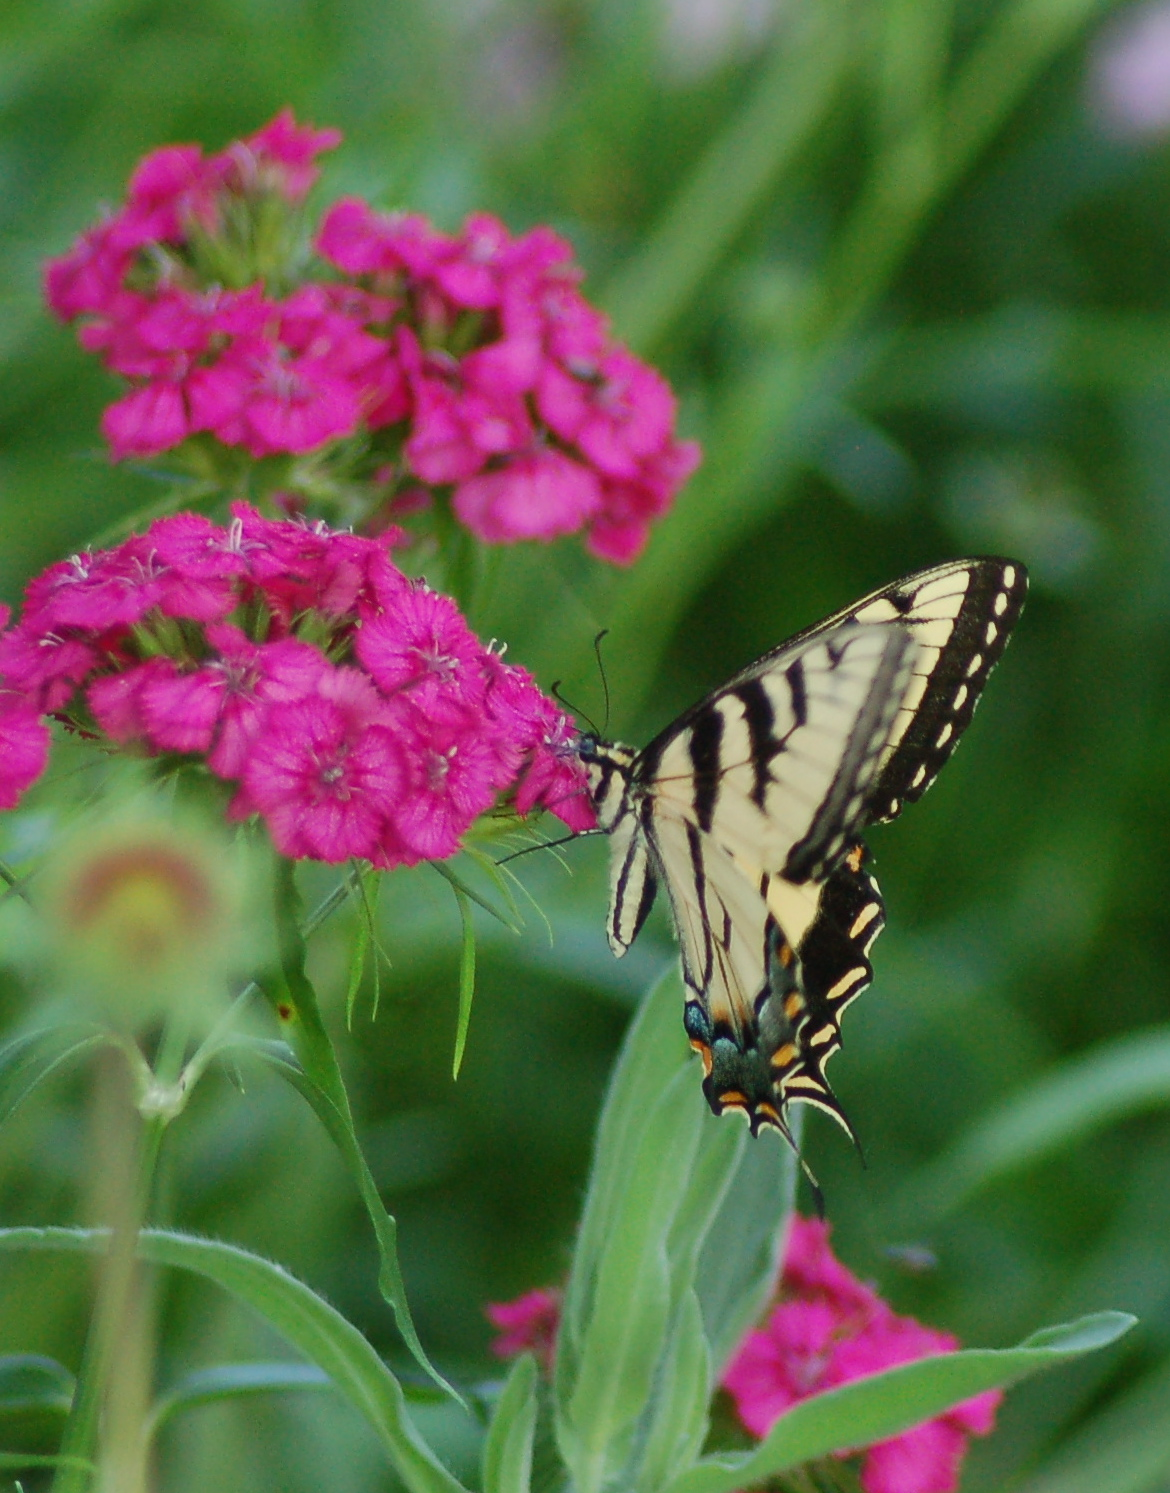 Floral and fauna by Bruce Stambaugh